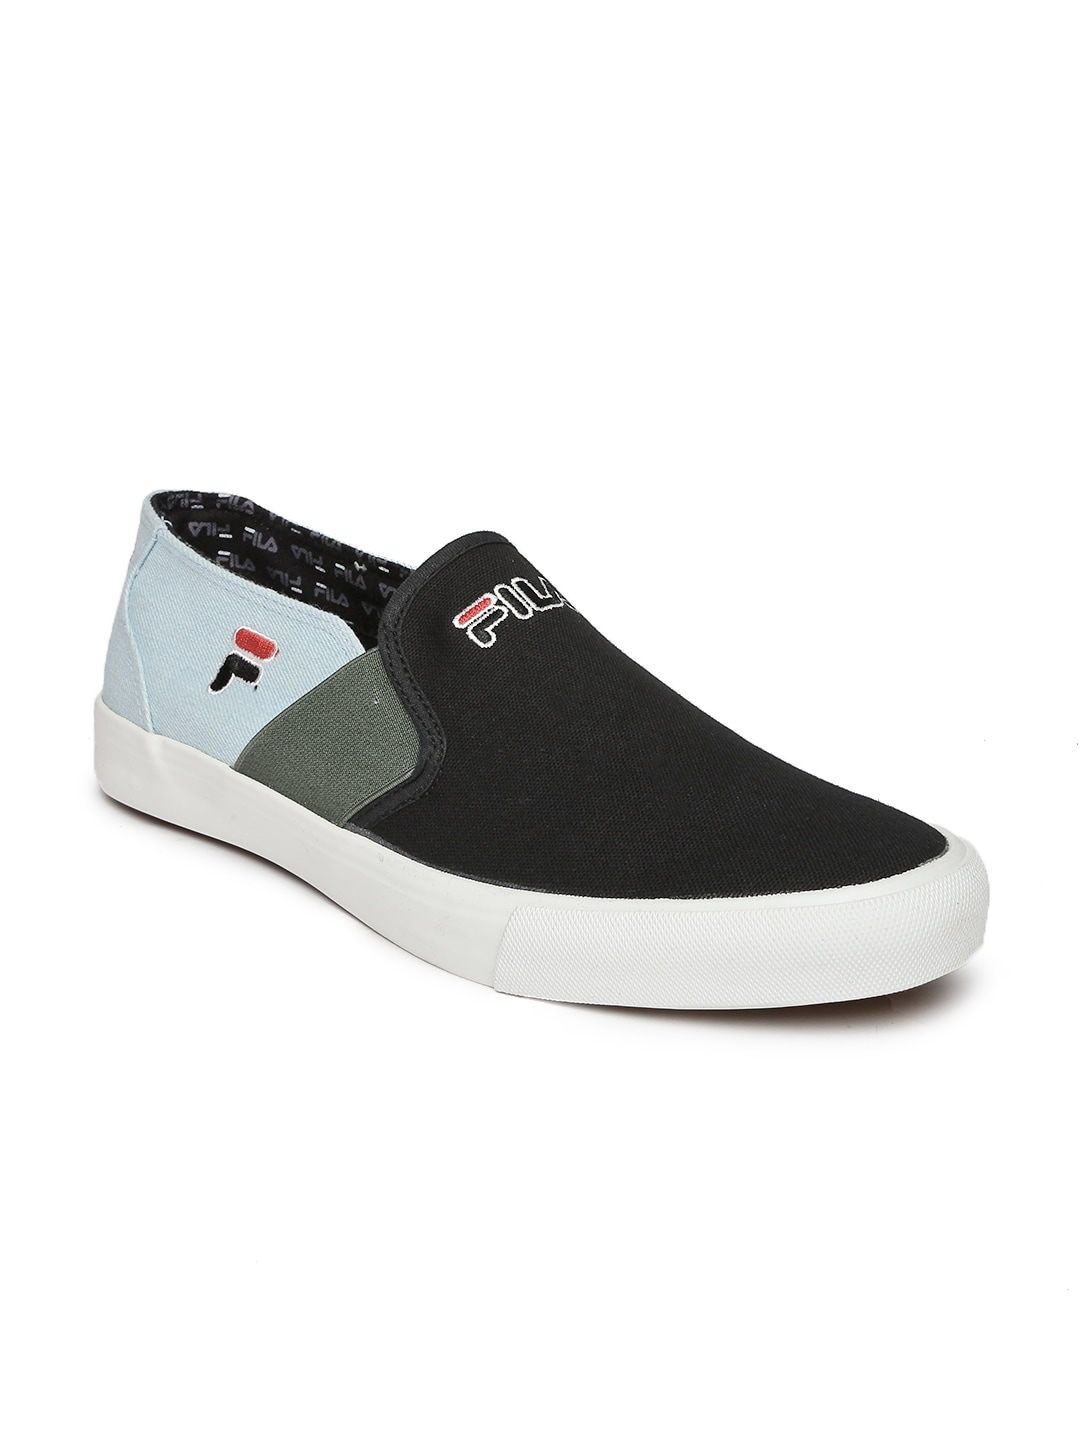 0b7b79fa017a Fila Slip On Shoes - Buy Fila Slip On Shoes online in India